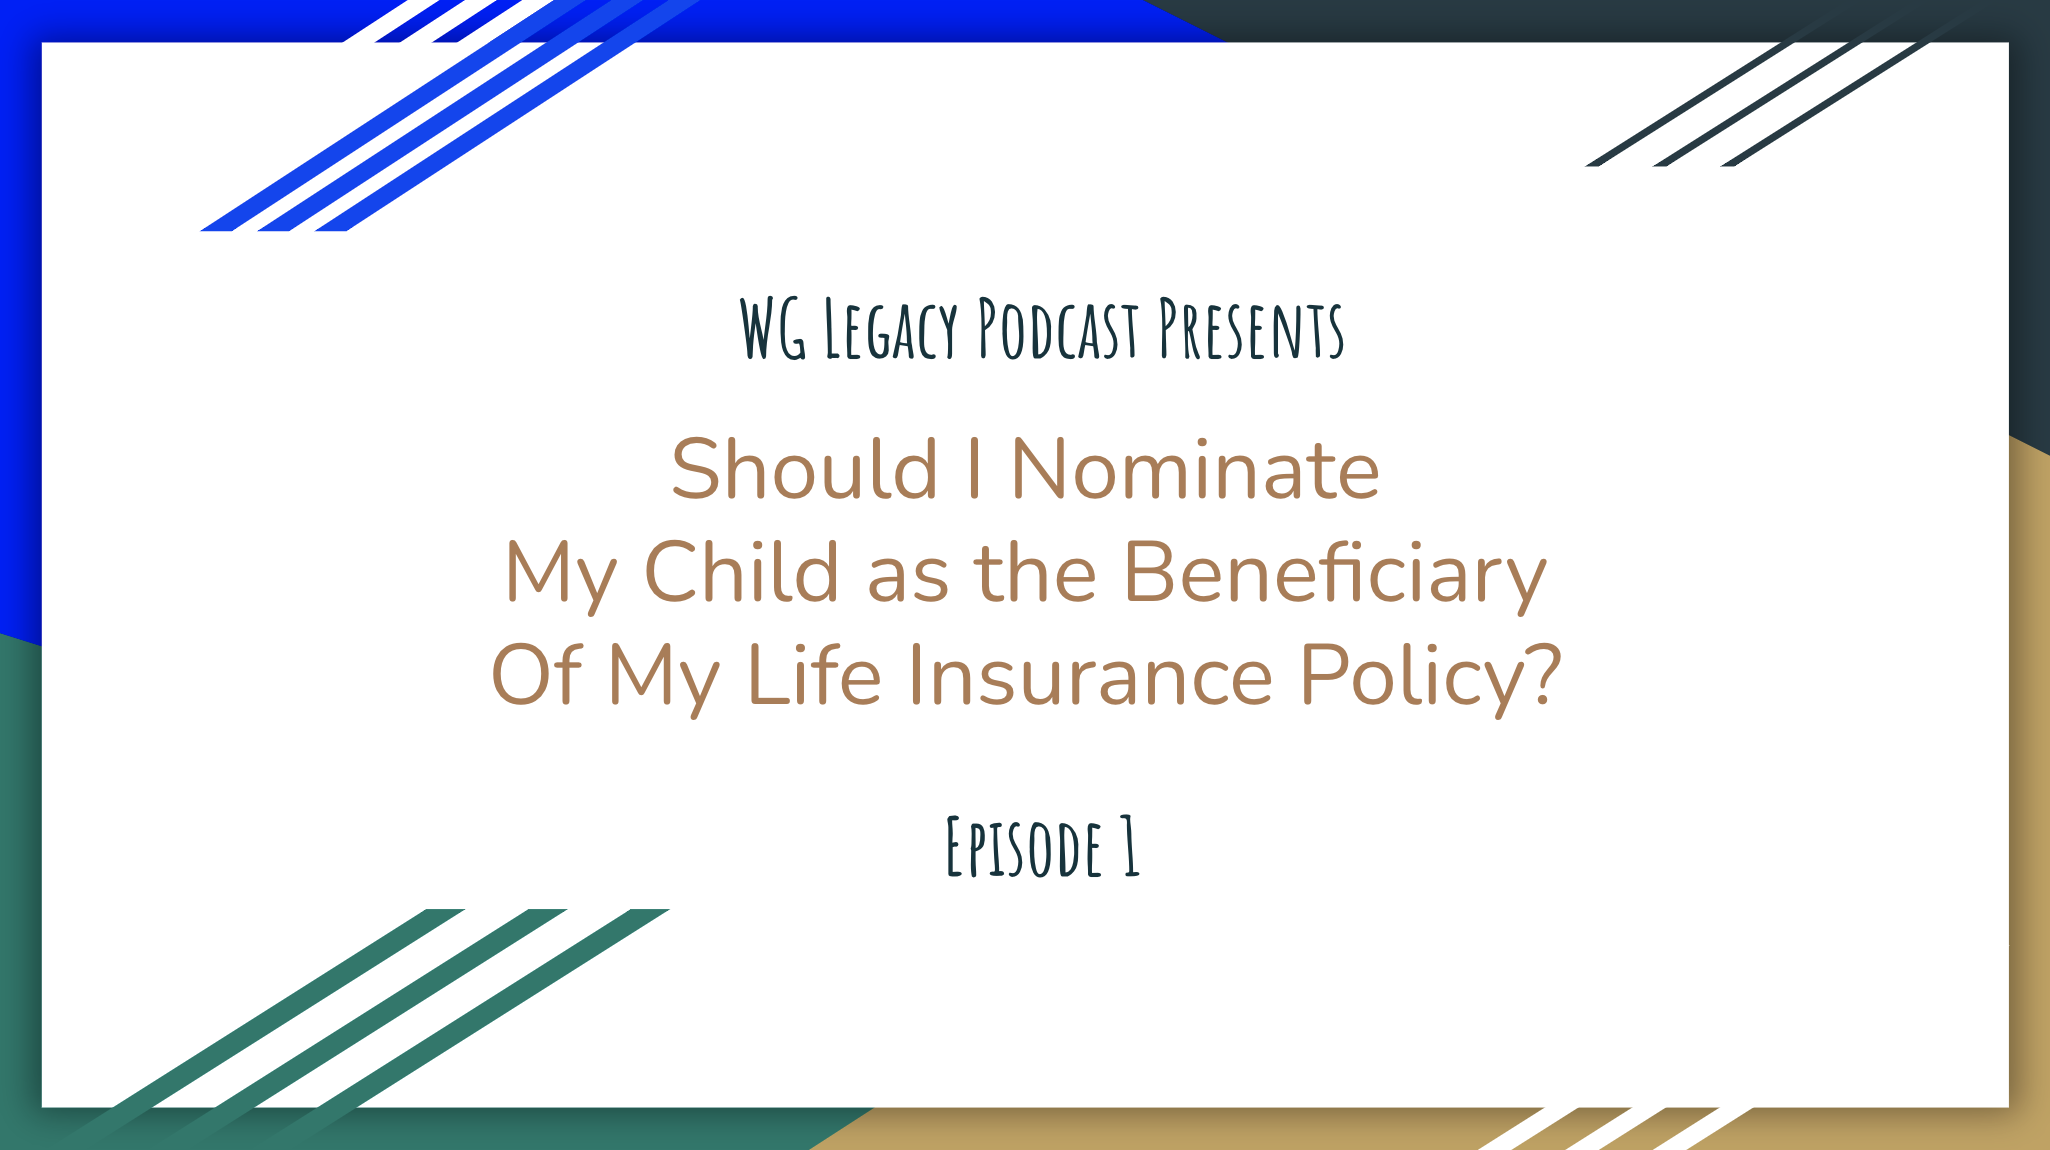 Should I Nominate my Kid as Beneficiary of Life Insurance Policy?